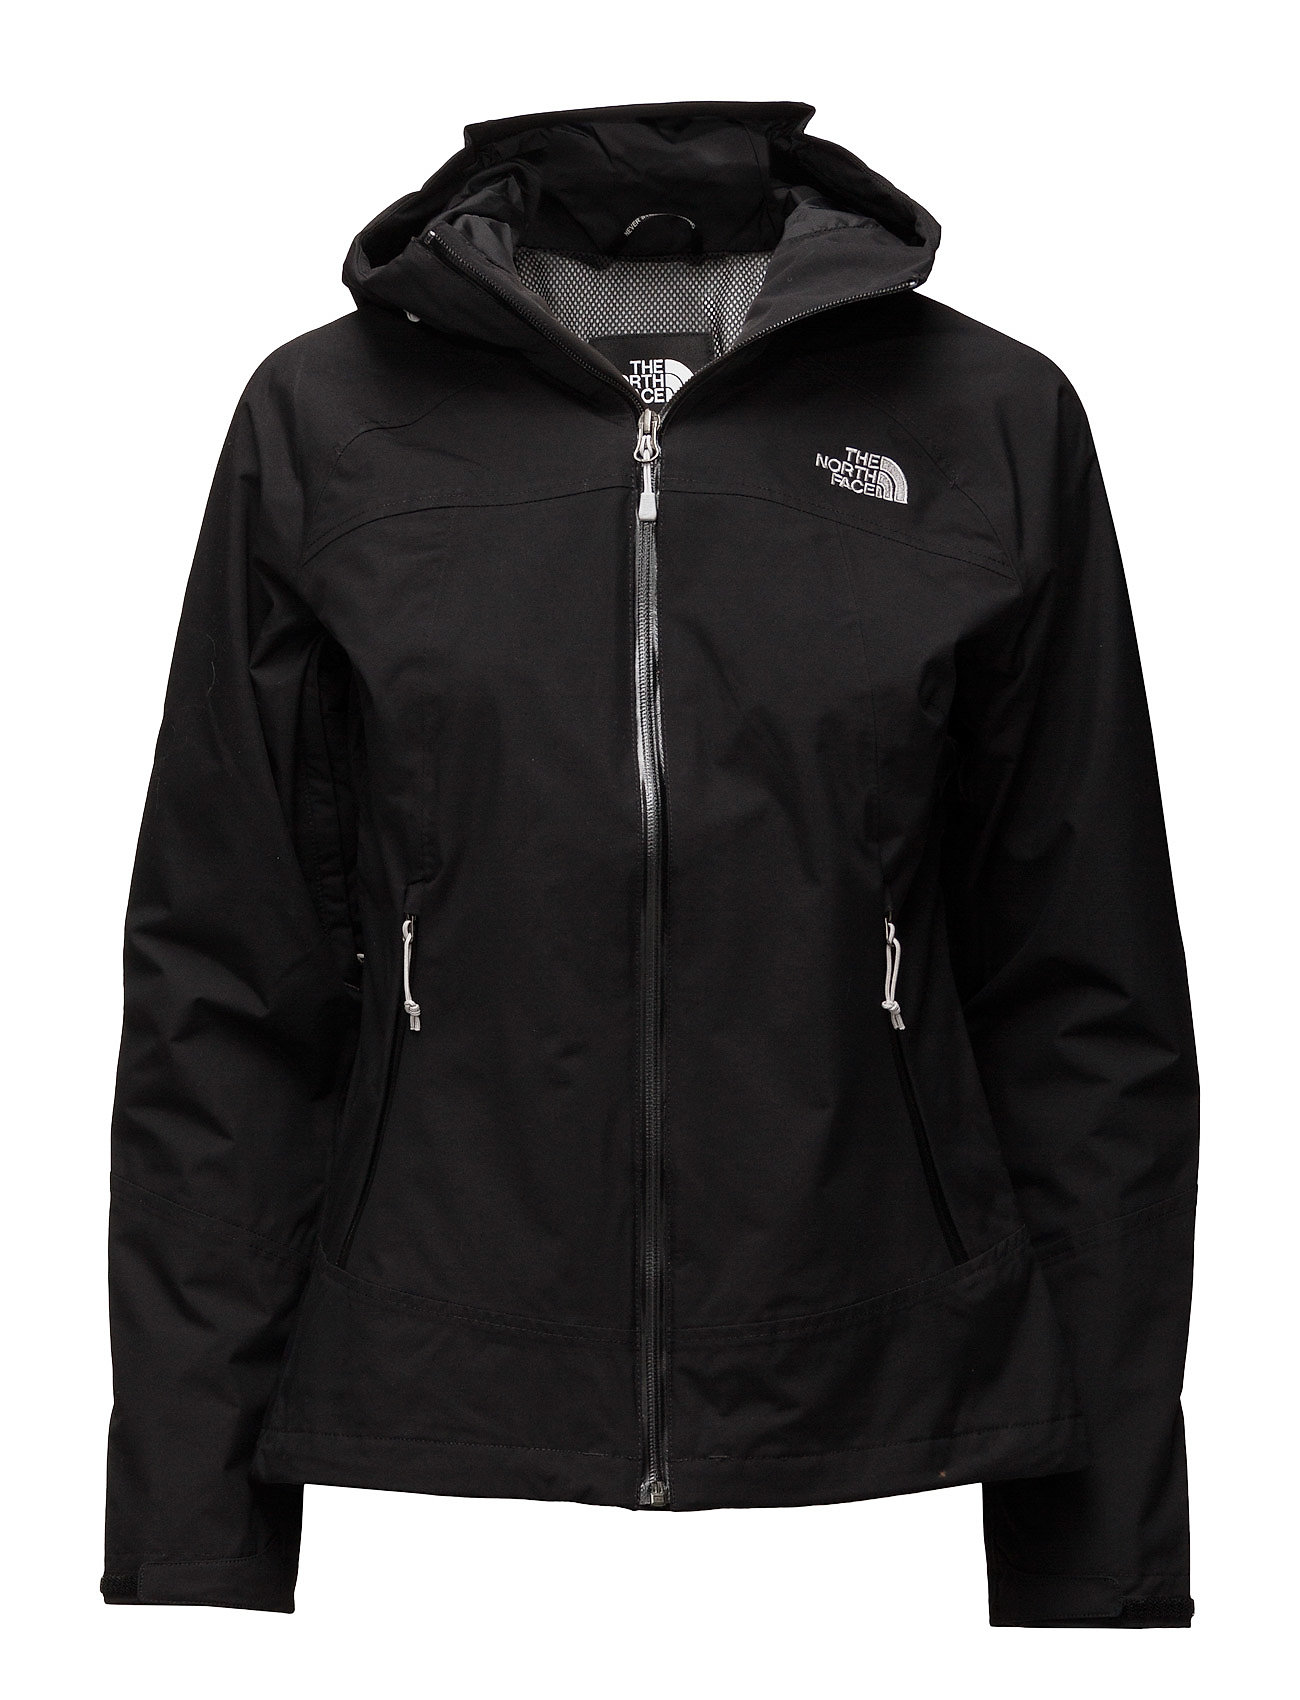 The North Face W STRATOS JACKET - TNF BLK/TNF BLK